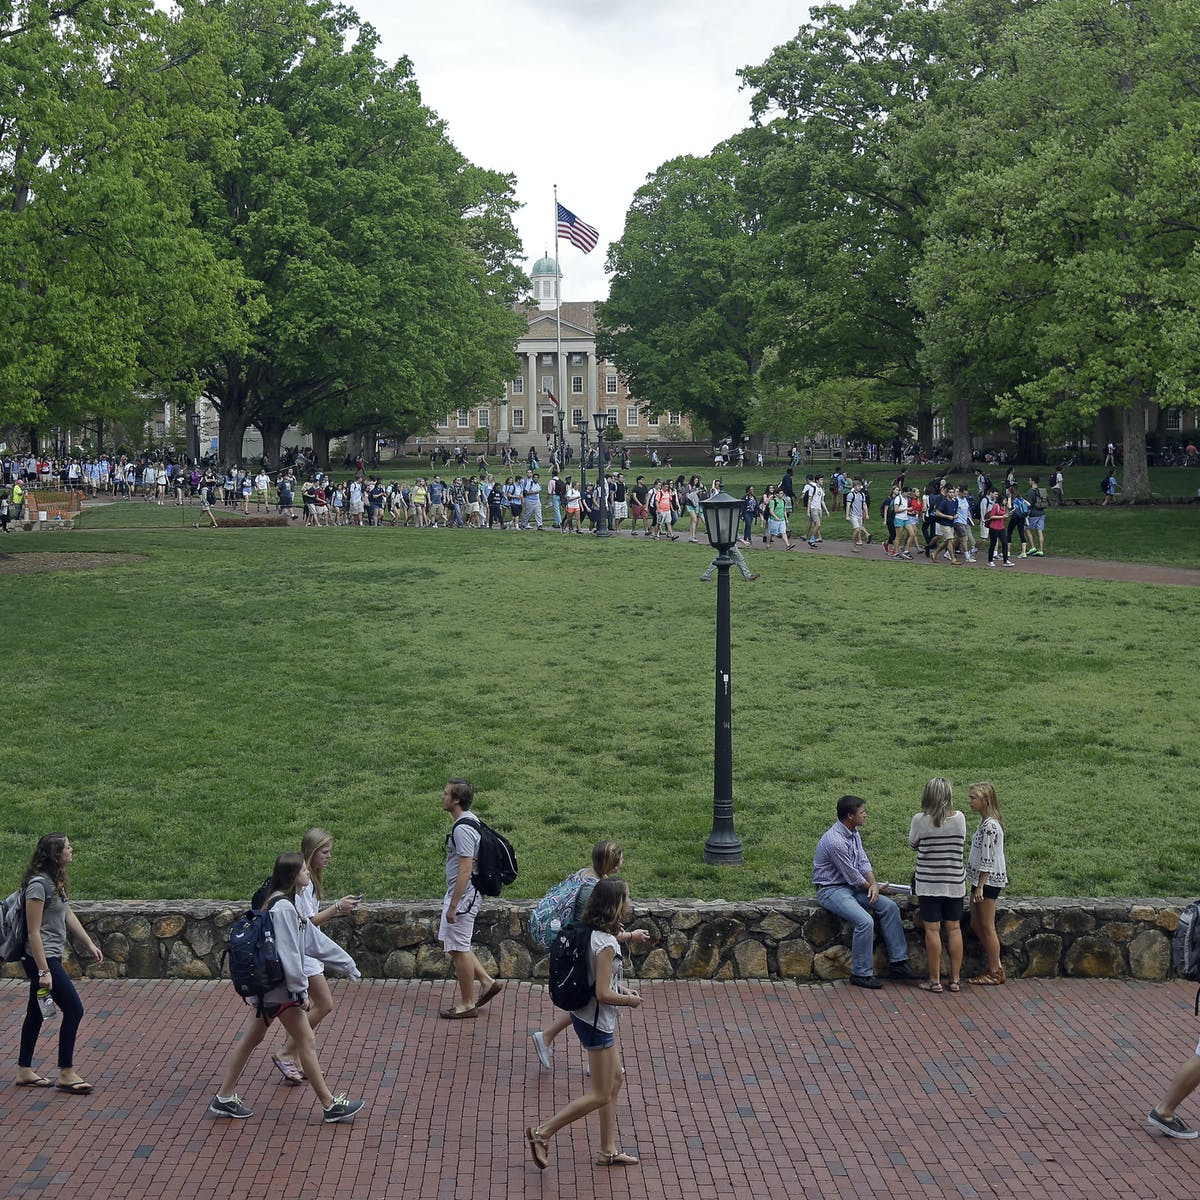 All public universities get private money, but some get much